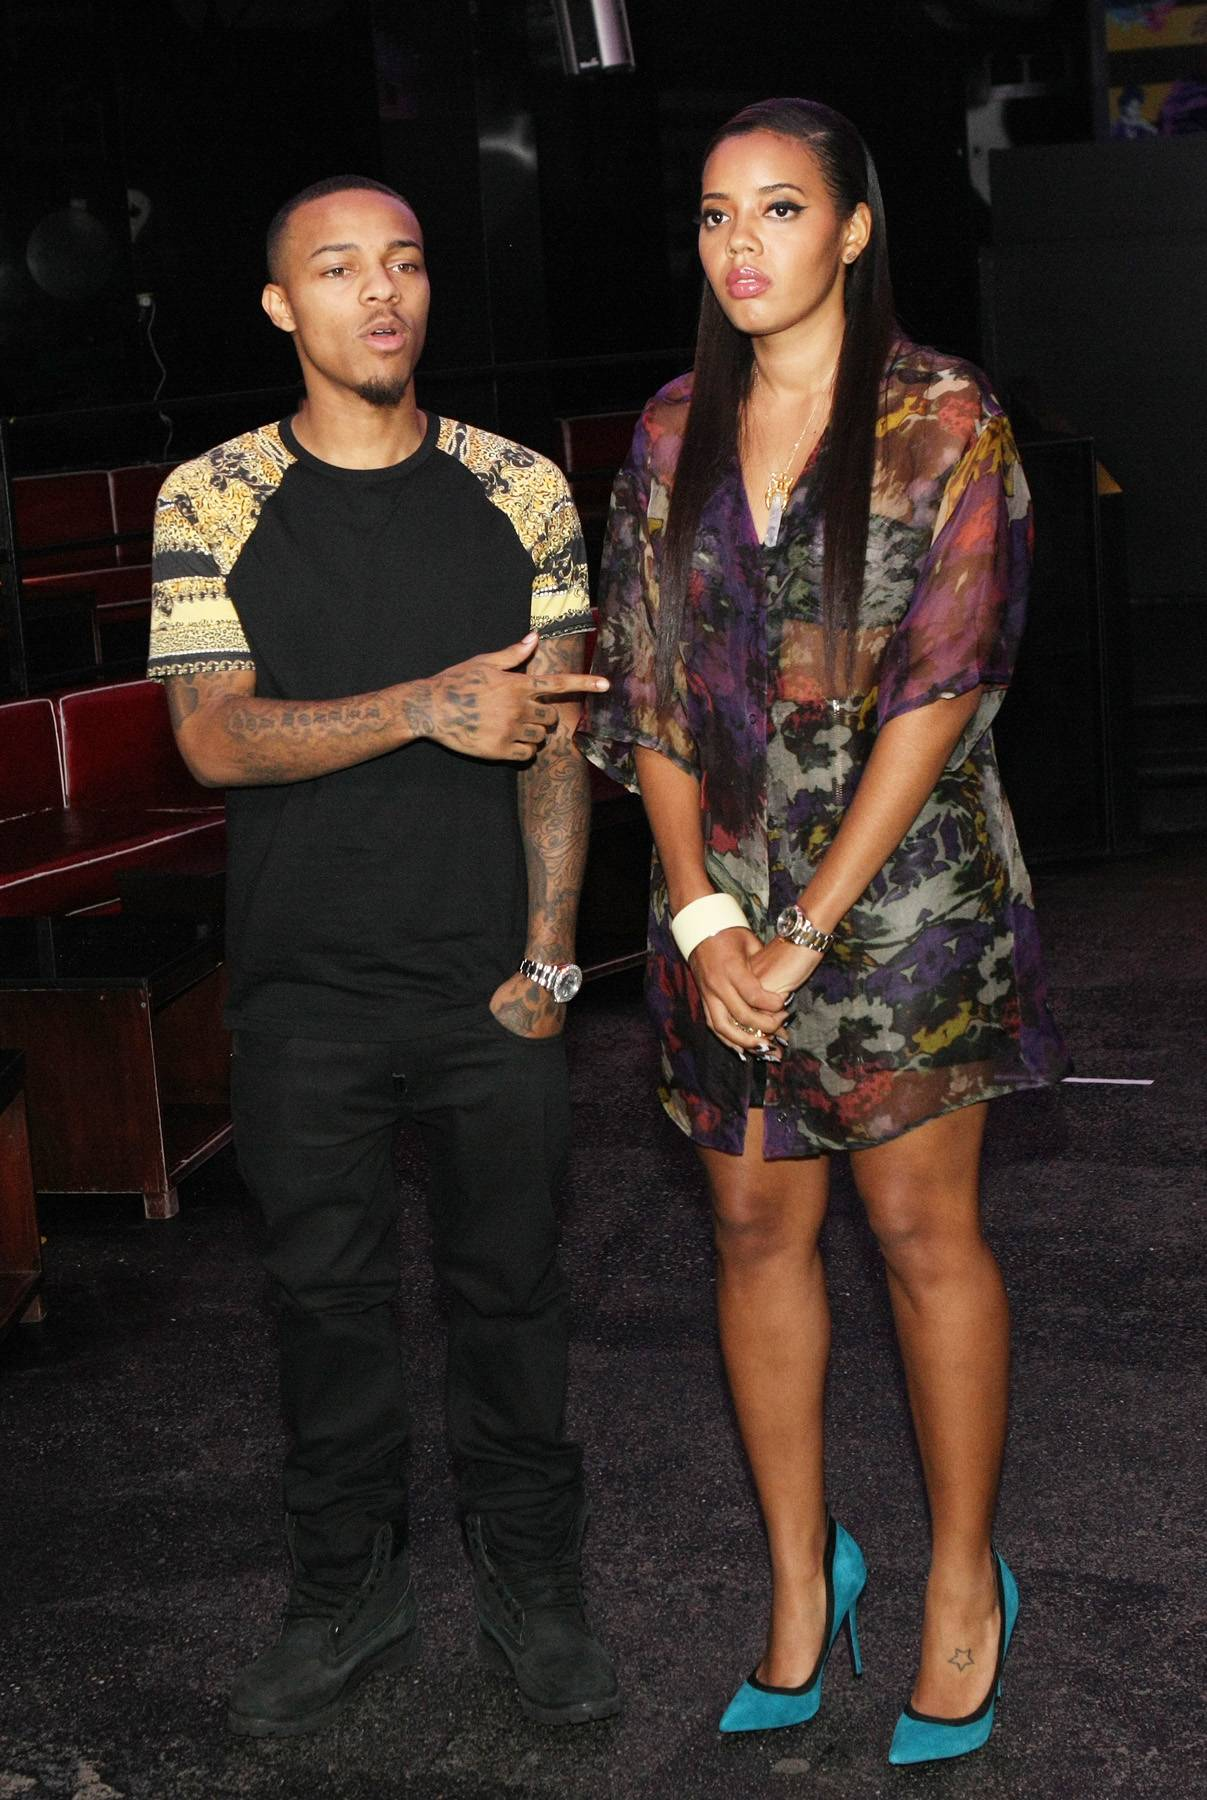 Fashion Talk - Hosts Bow Wow and Angela Simmons chat a bit with each other while on set. (Photo by Bennett Raglin/BET/Getty Images for BET)